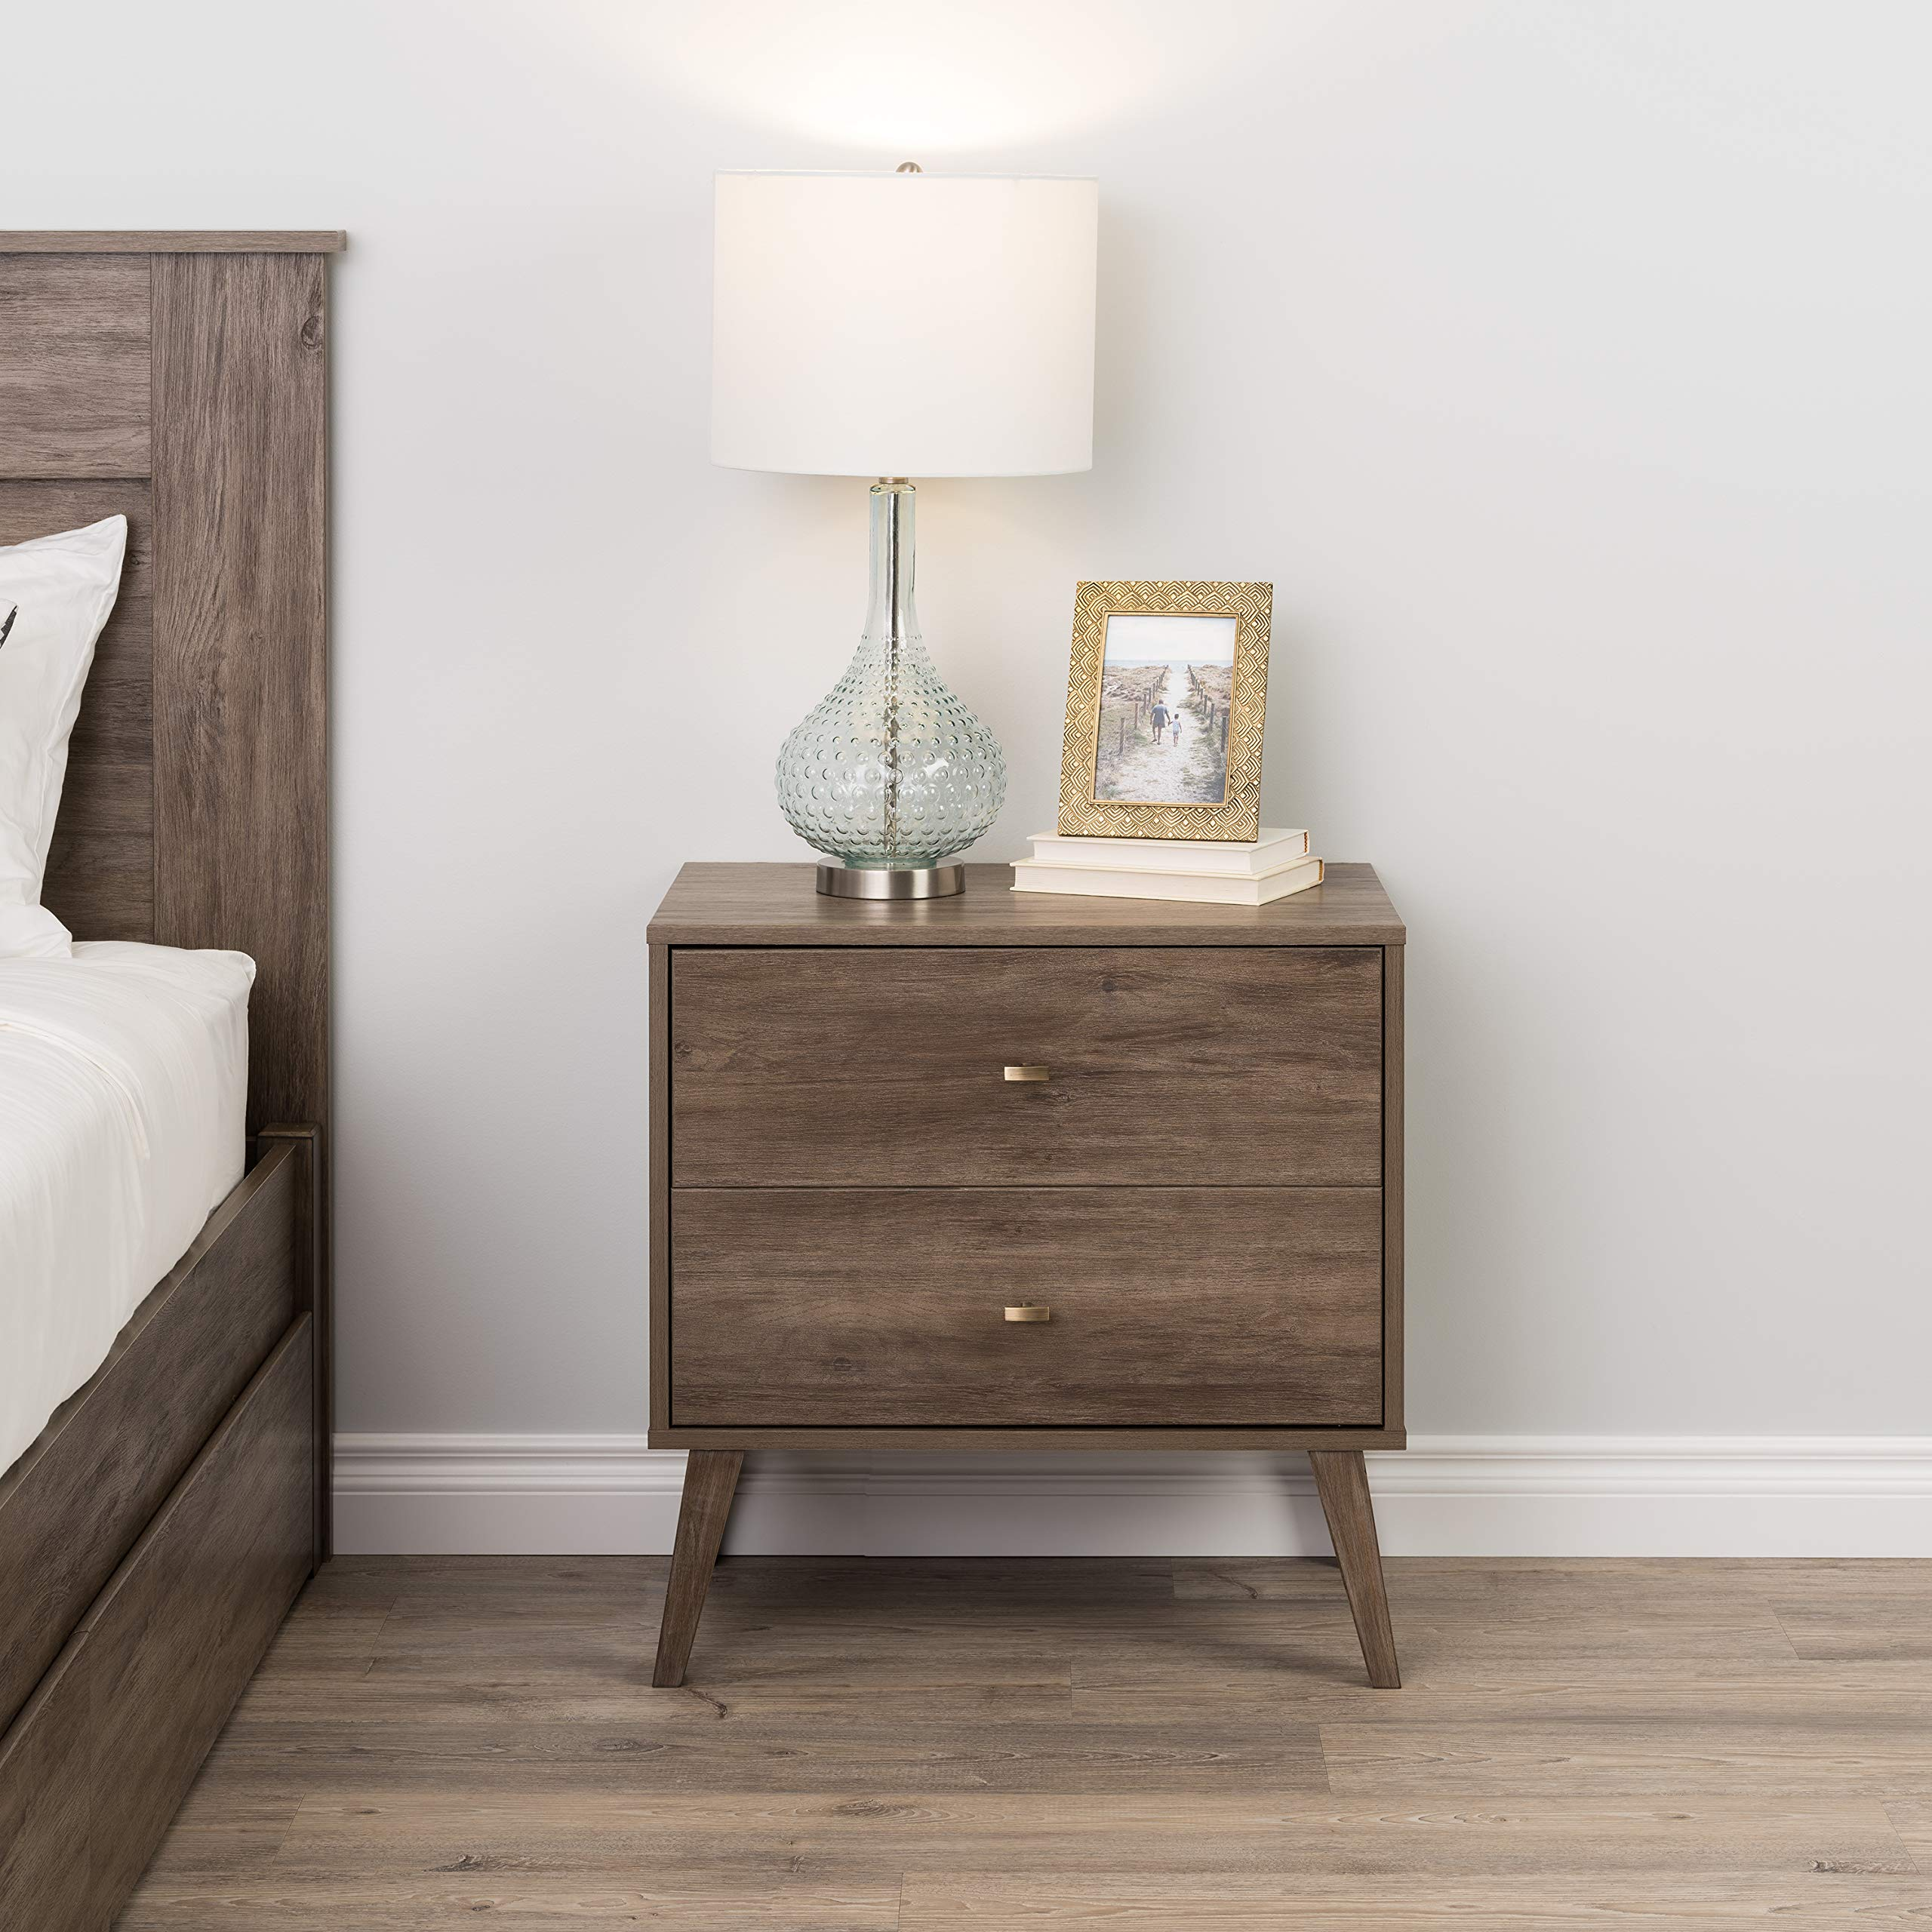 Prepac Milo Mid Century Modern 2 Drawer Nightstand in Drifted Gray by Prepac